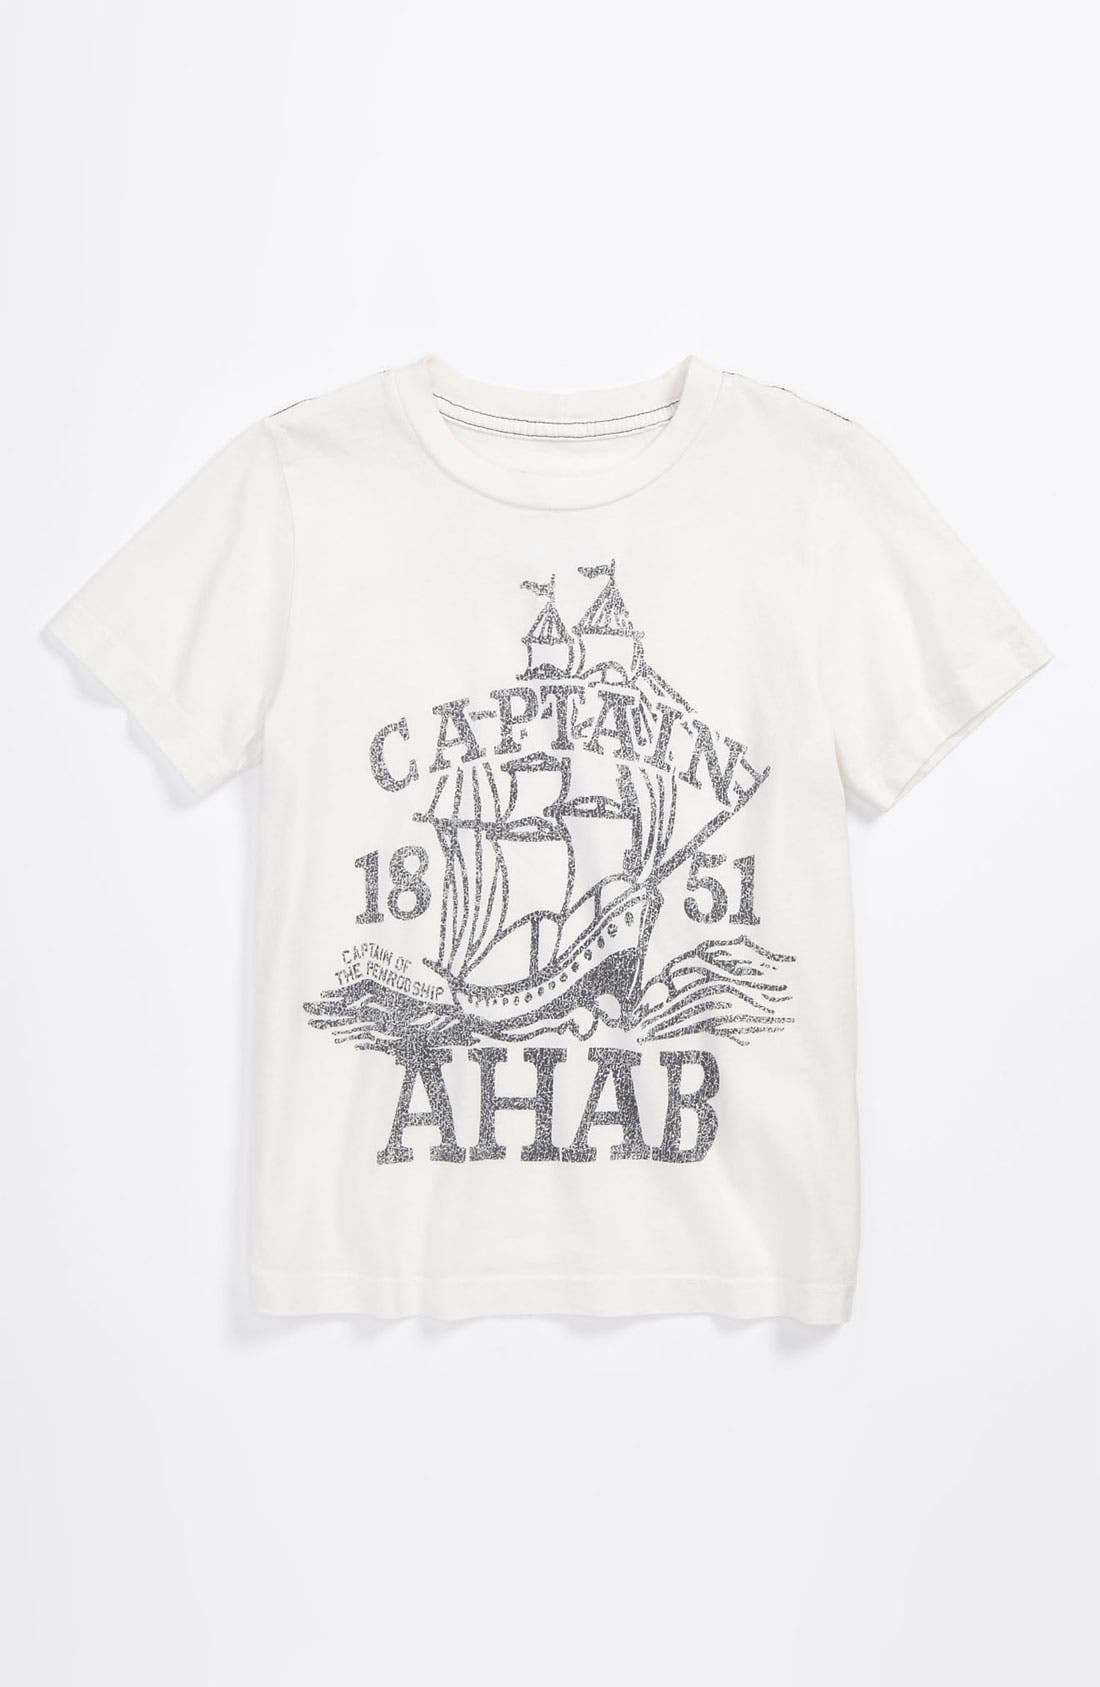 Alternate Image 1 Selected - Peek Graphic T-Shirt (Toddler, Little Boys & Big Boys)